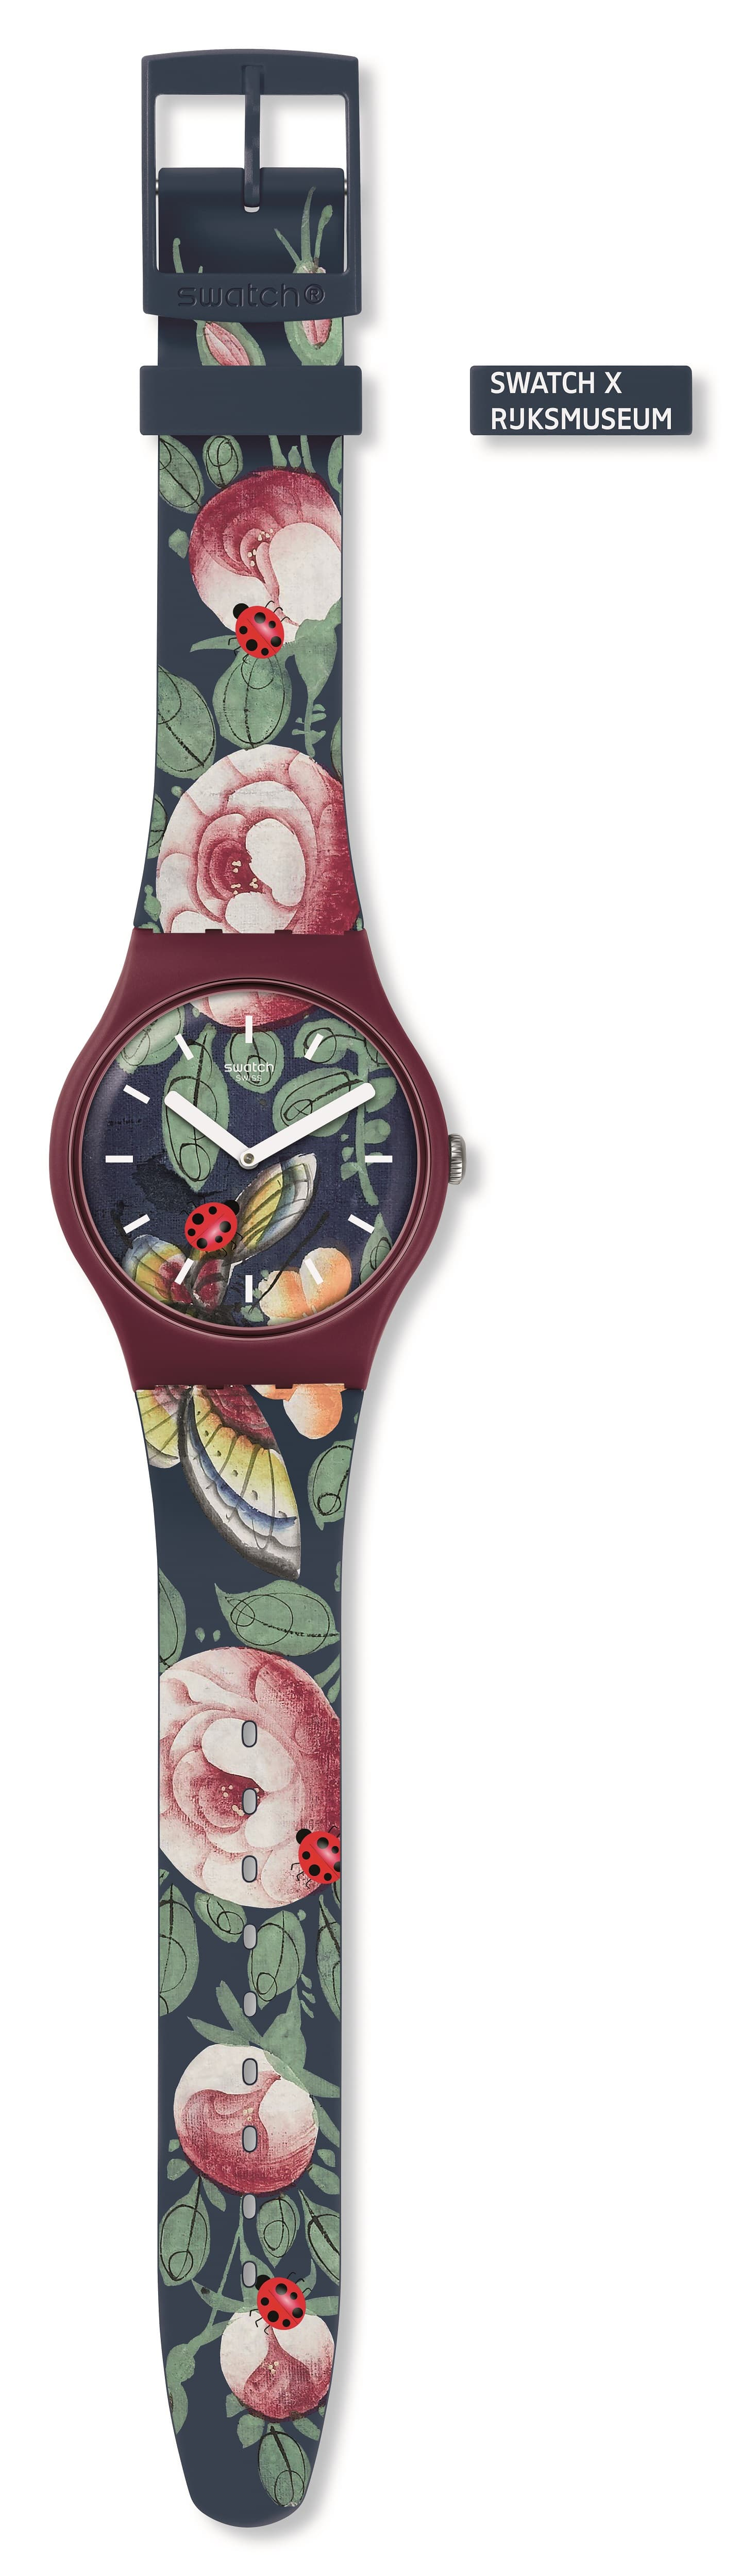 SWATCH WORLDHOOD- PARTNERED WITH RIJKSMUSEUM_Original (4) (1)